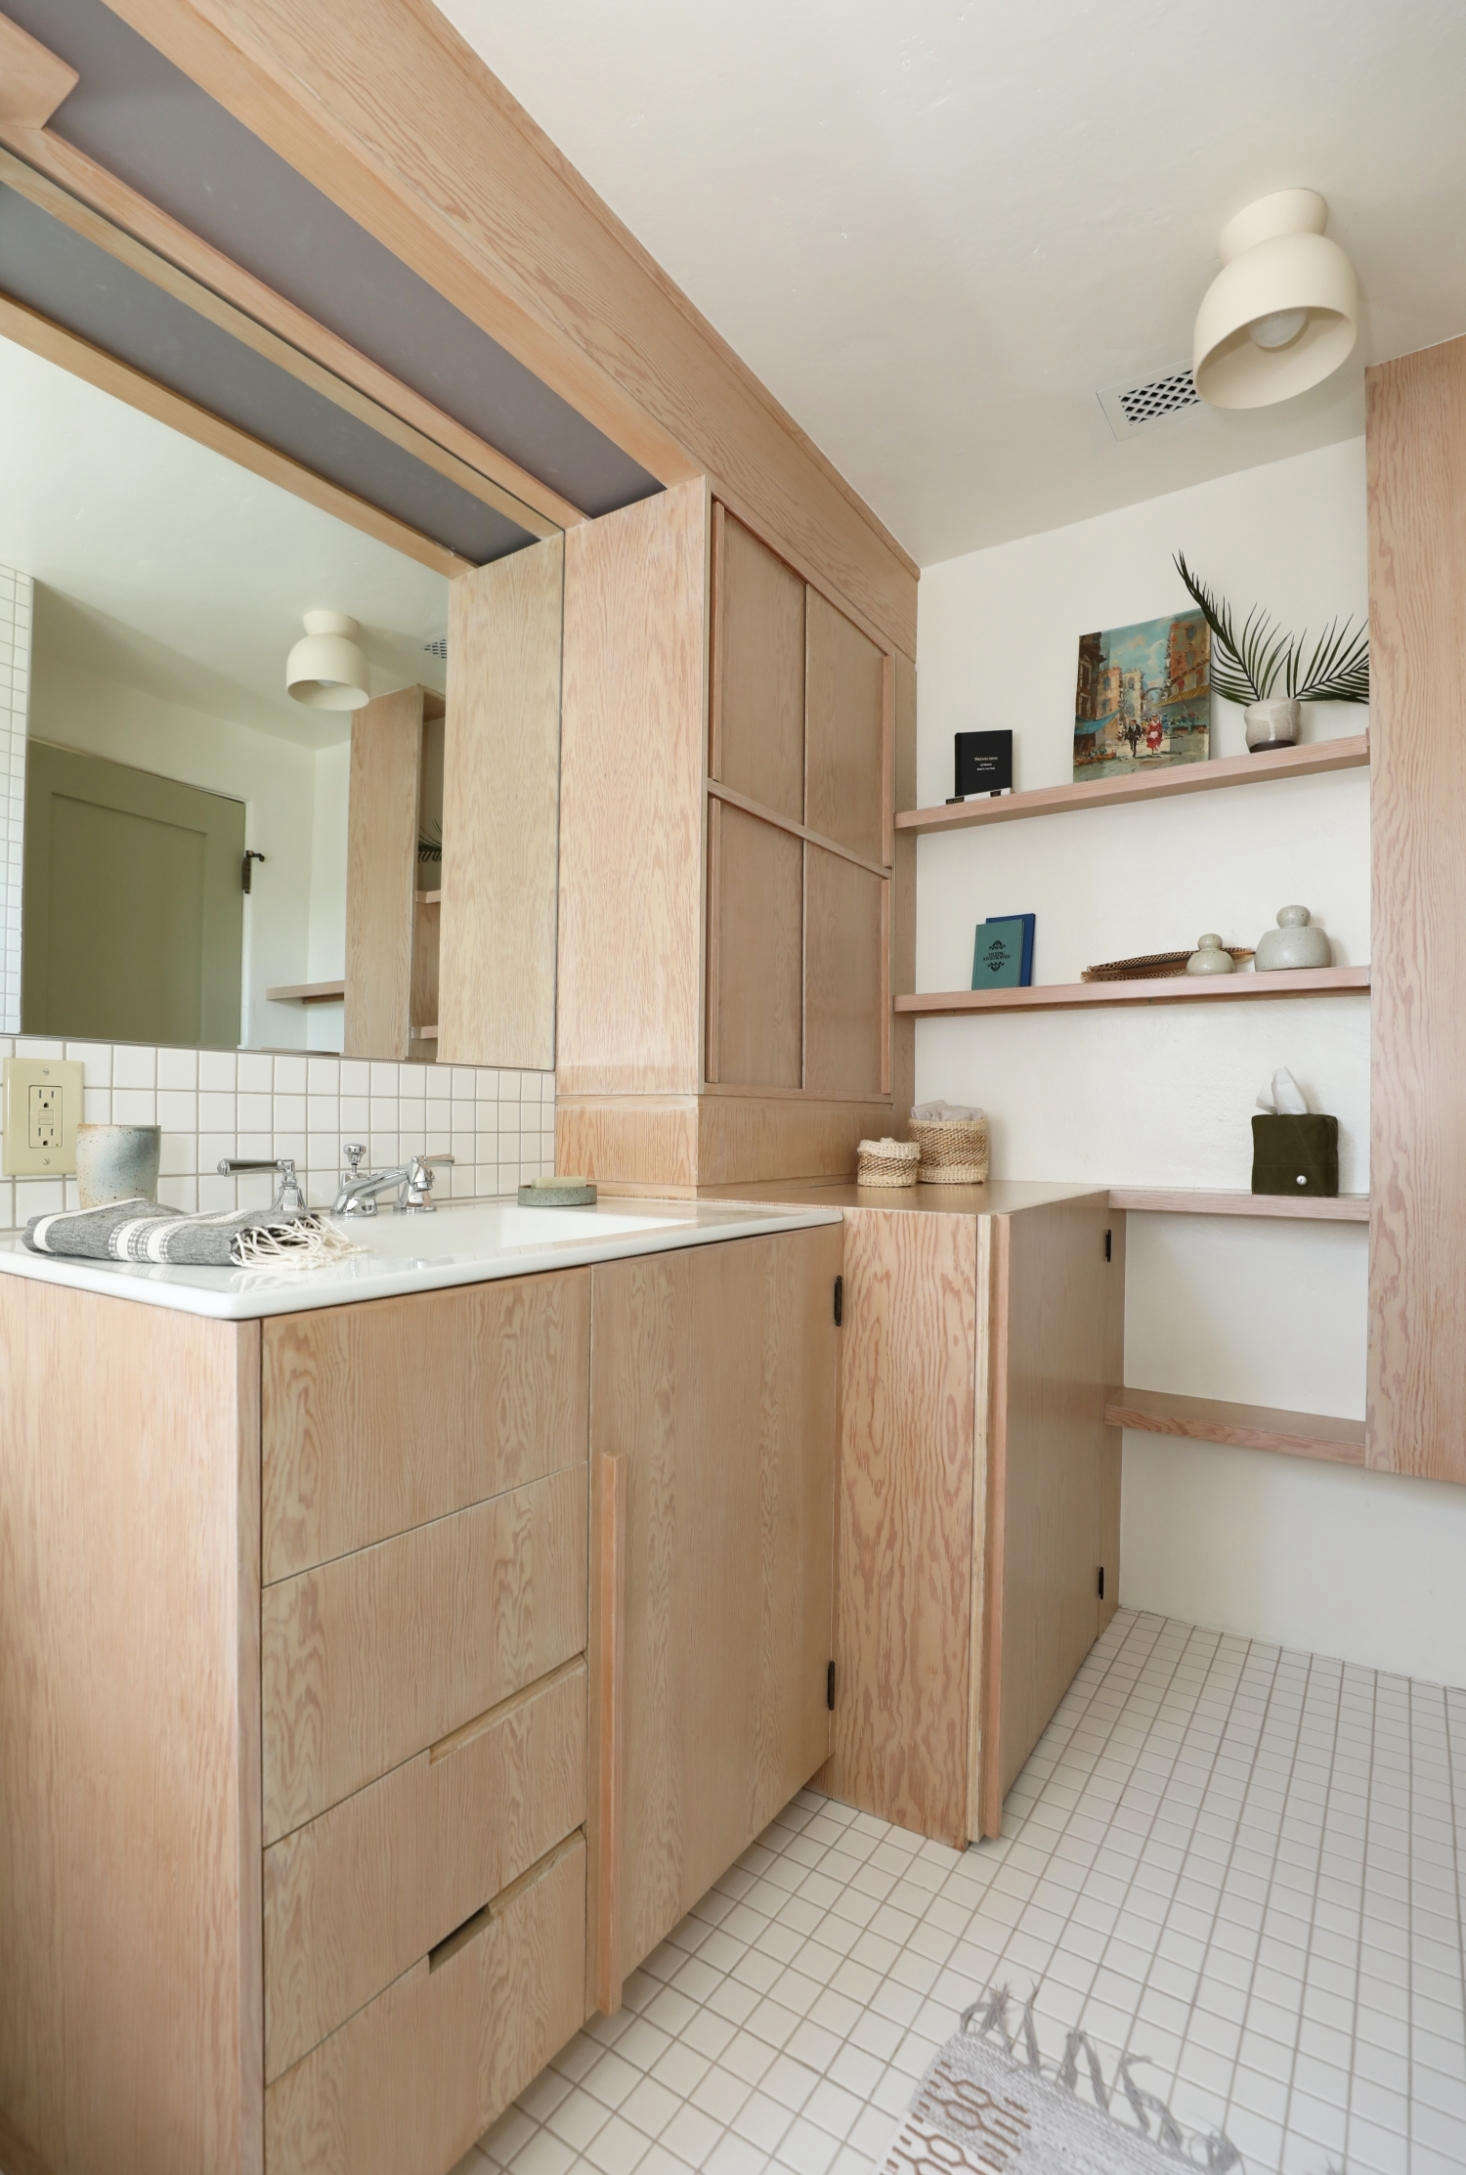 Luis Guerra Woodworking made all the cabinets in the kitchen and bath. A dual washer/dryer unit is concealed behind the deep cabinet. The Terra Surface Ceiling Light is by Cedar and Moss.